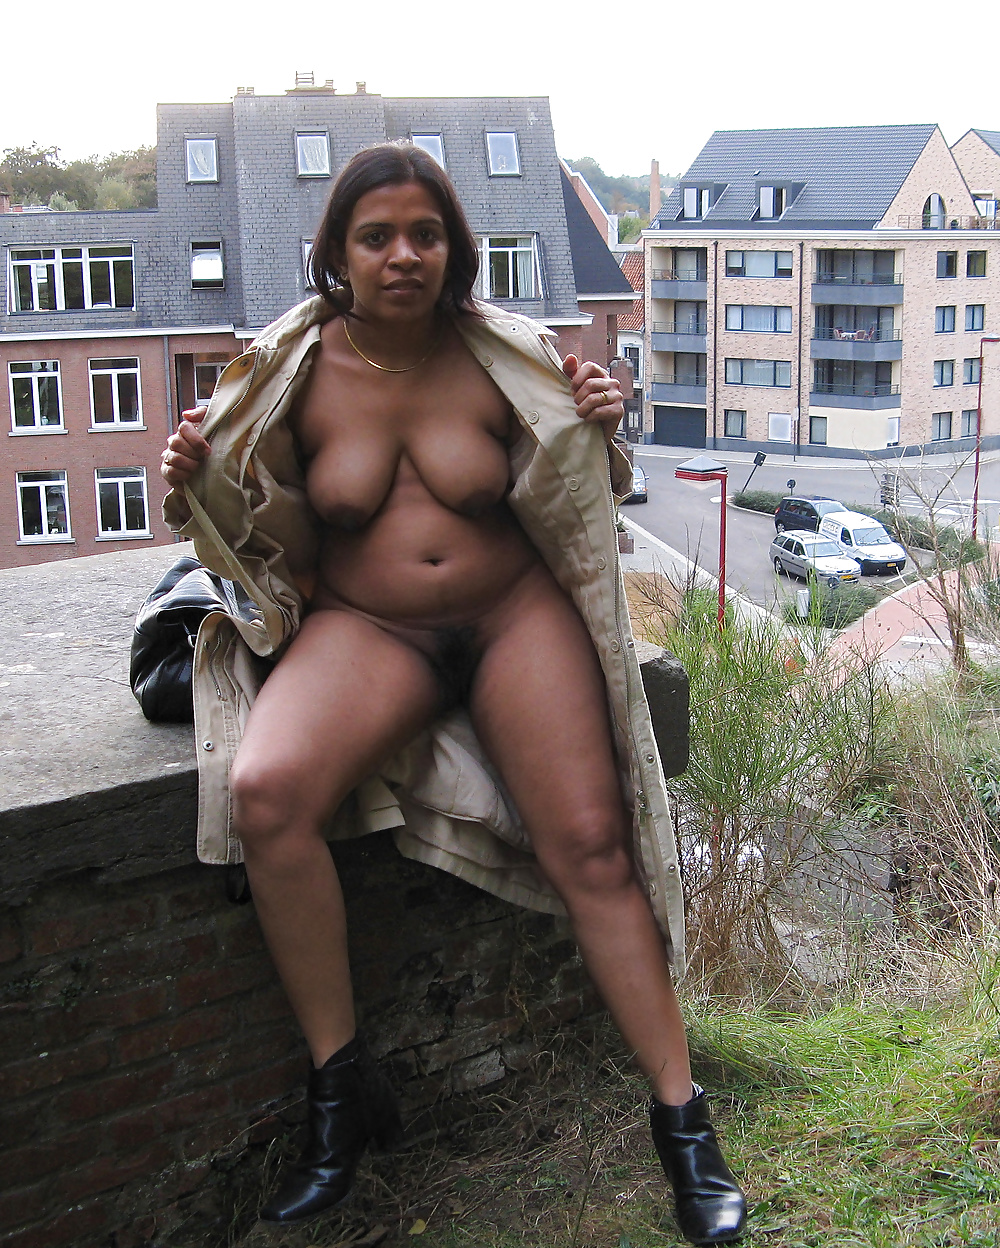 Indian wife nude outdoor showing boobs n pussy